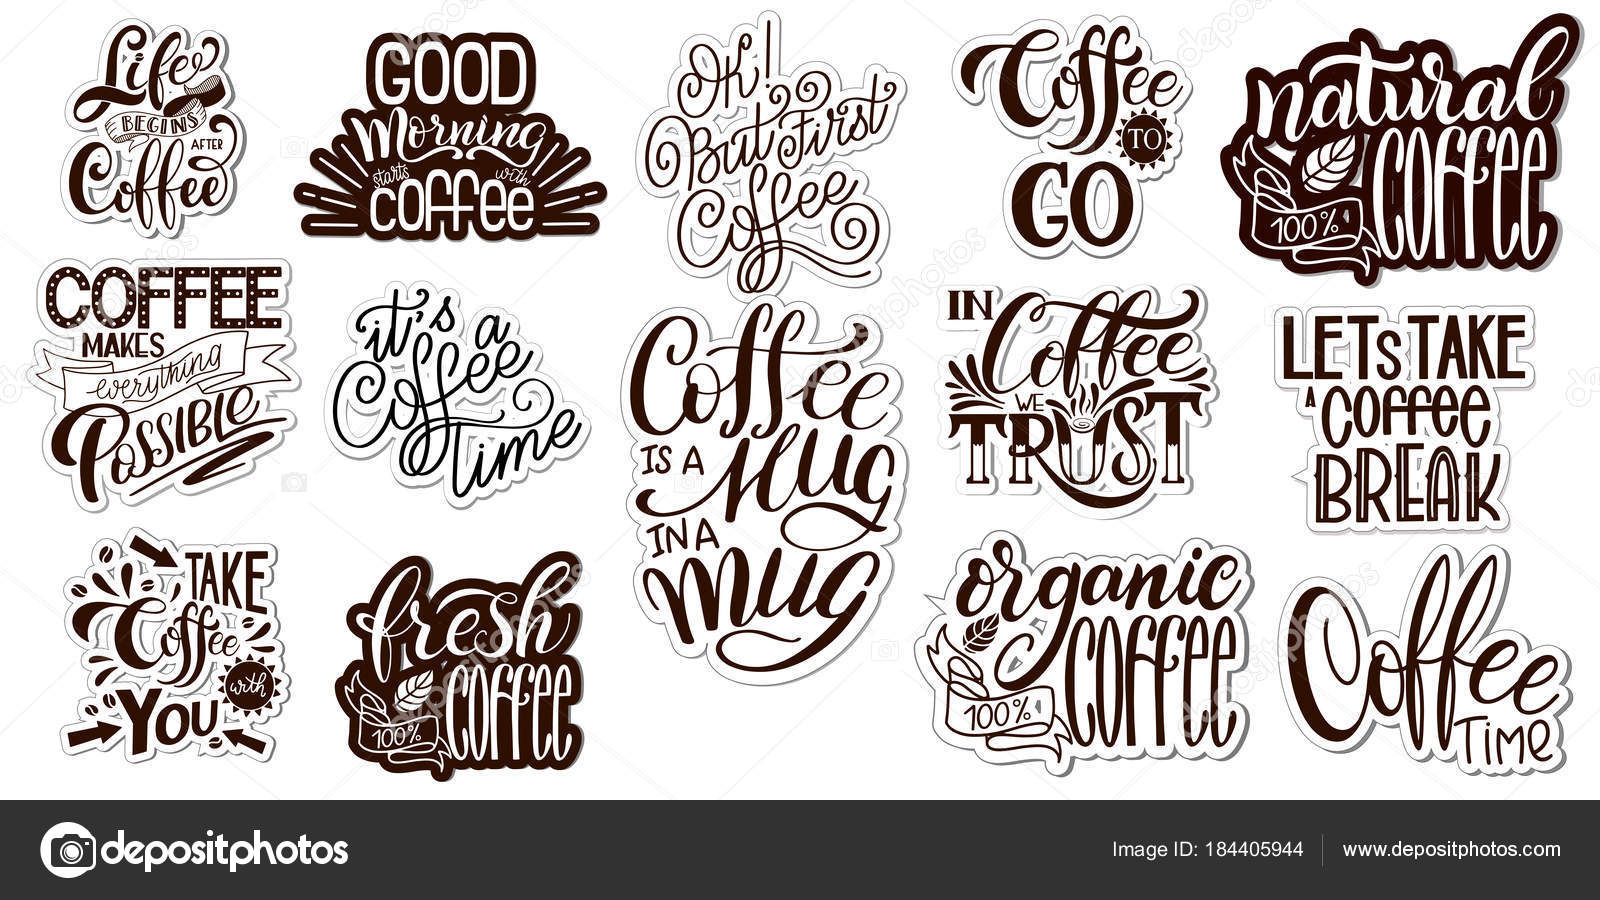 Lettering Sets Of Coffee Quotes Calligraphic Hand Drawn Sign Graphic Design Lifestyle Texts Cup Typography Shop Promotion Motivation Vector By